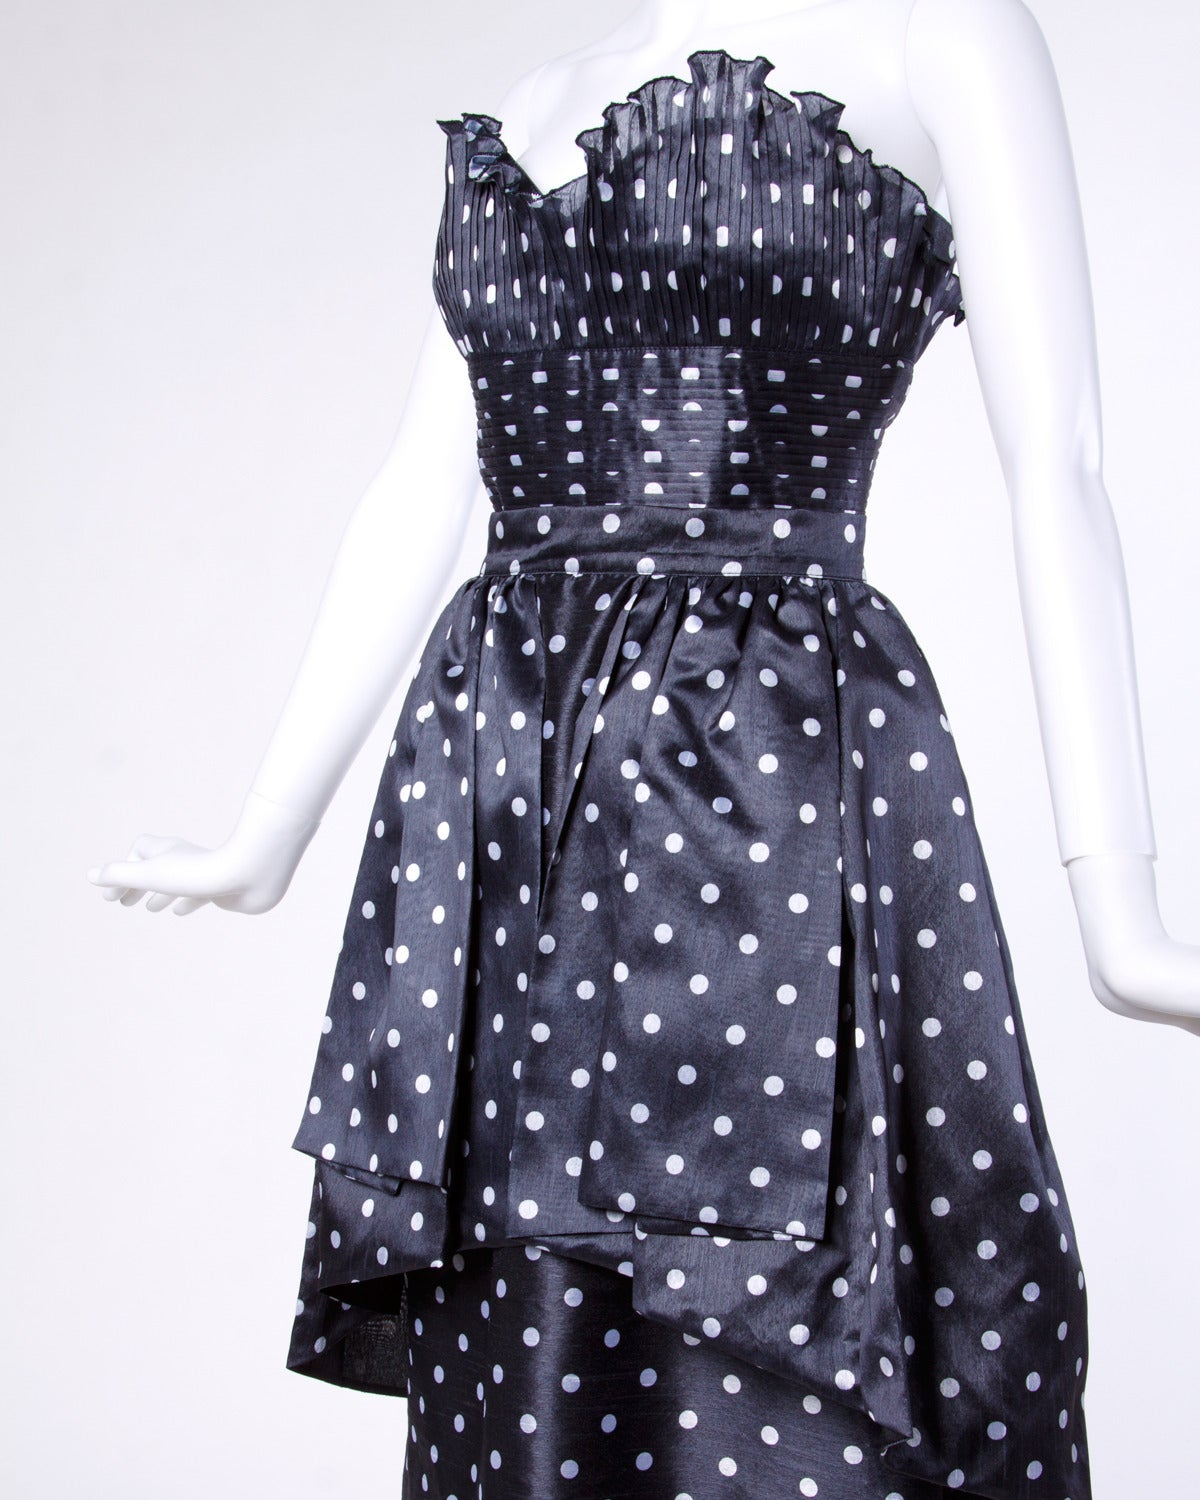 Loris Azzaro Vintage Polka Dot Bustier Top + Skirt 2-Piece Dress Ensemble For Sale 2